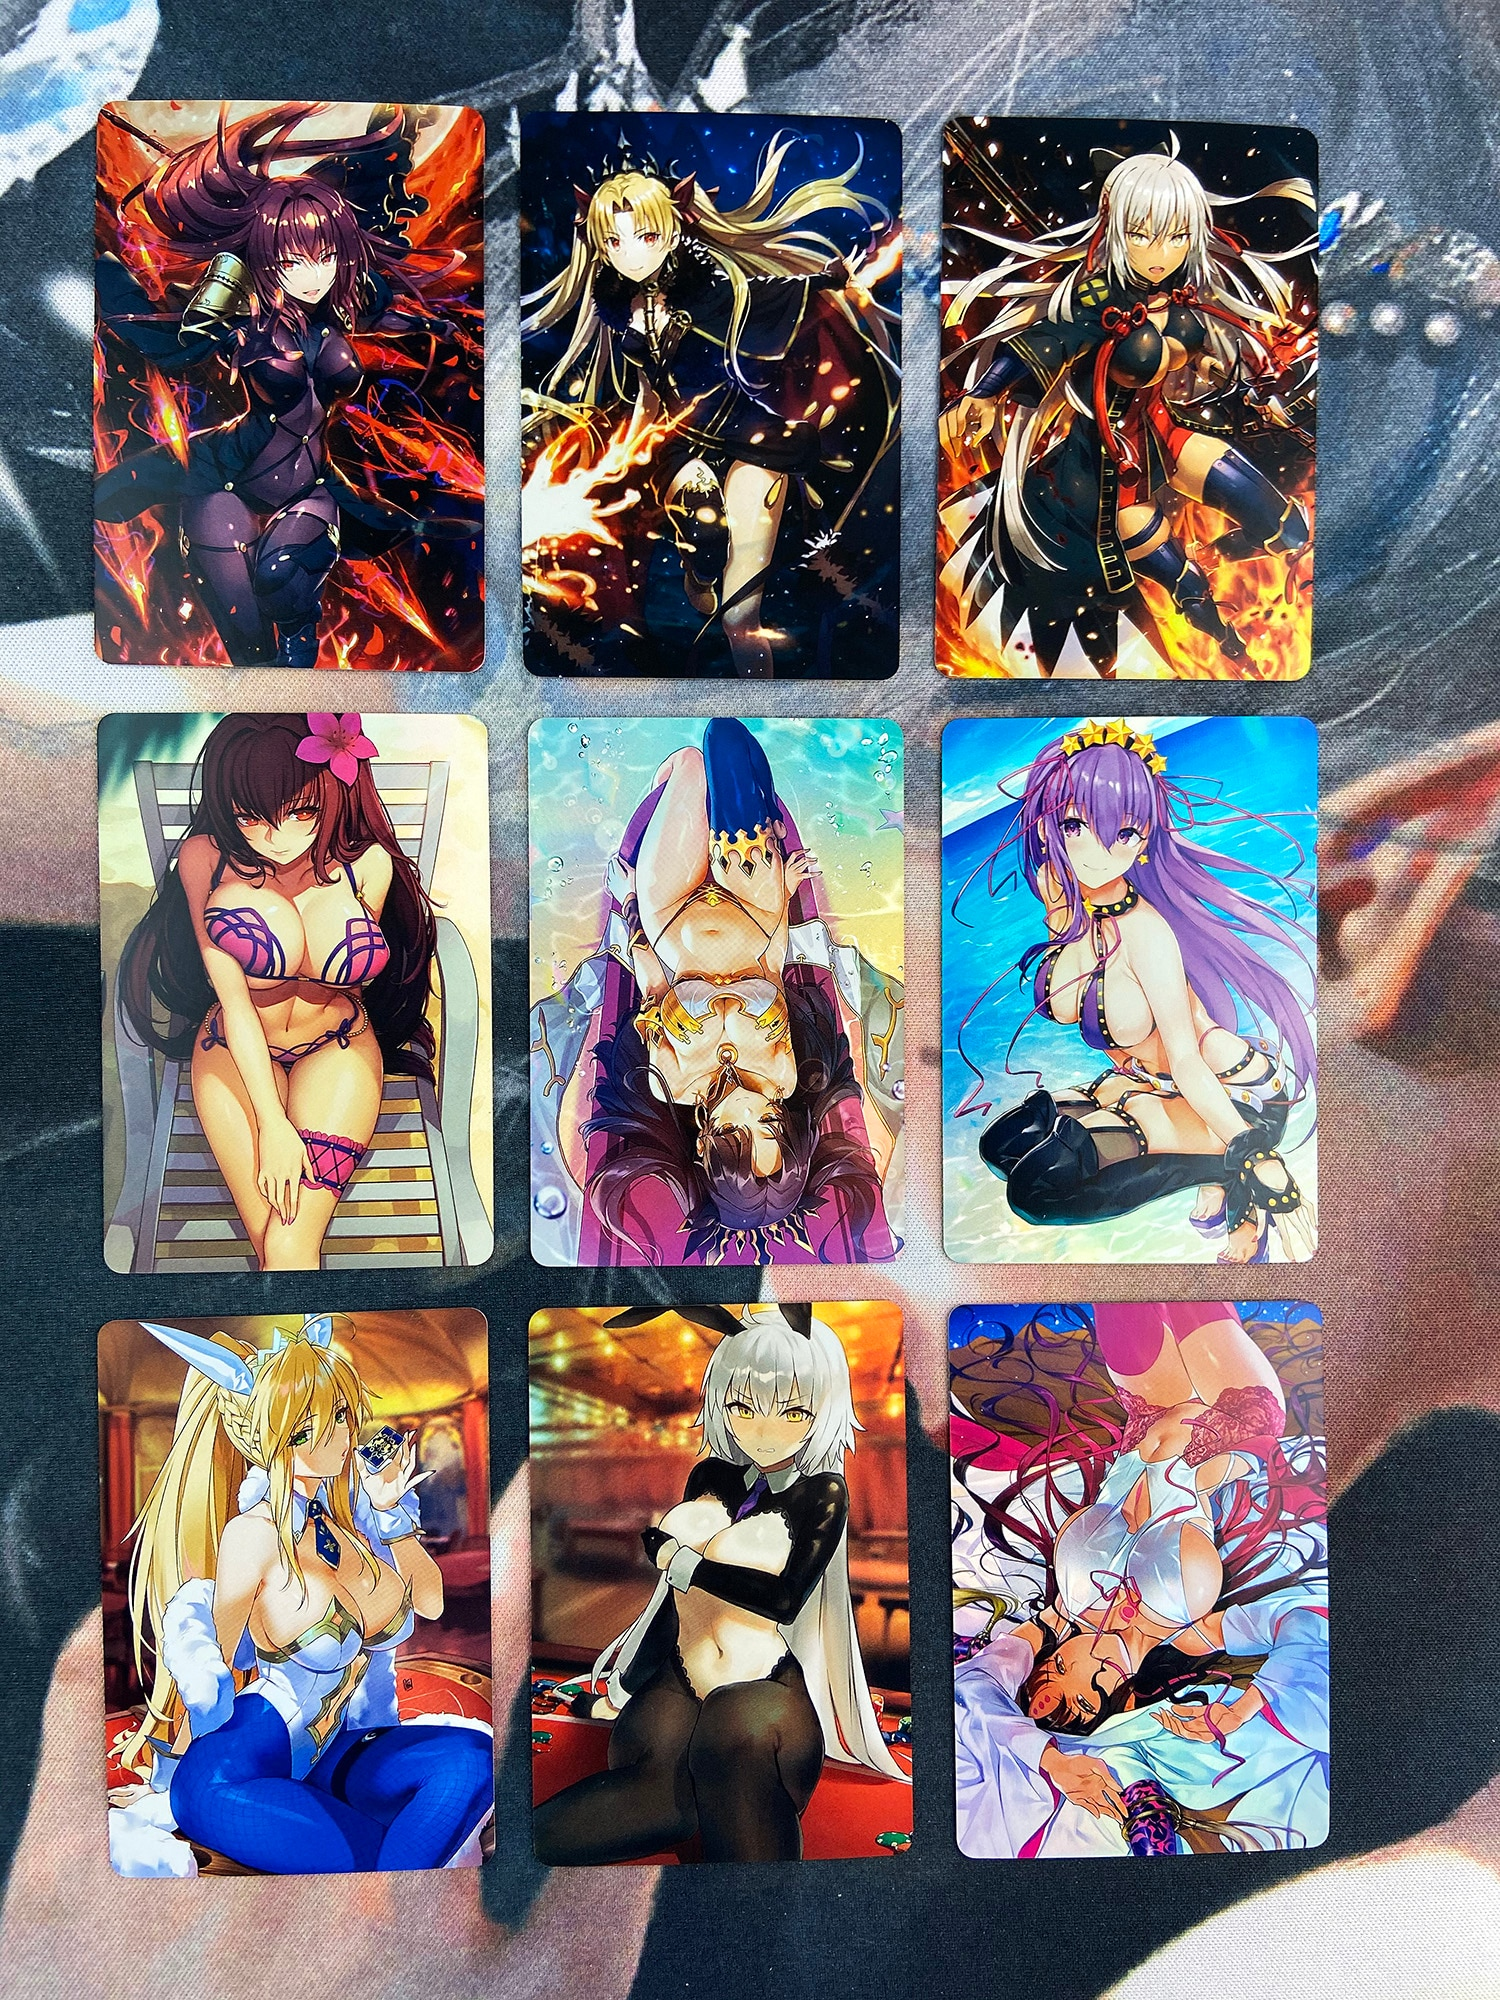 9pcs/set Fate Fgo Fate/grand Order No.6 Toys Hobbies Hobby Collectibles Game Collection Anime Cards japan anime fate grand order original banpresto exq collection figure ruler malta